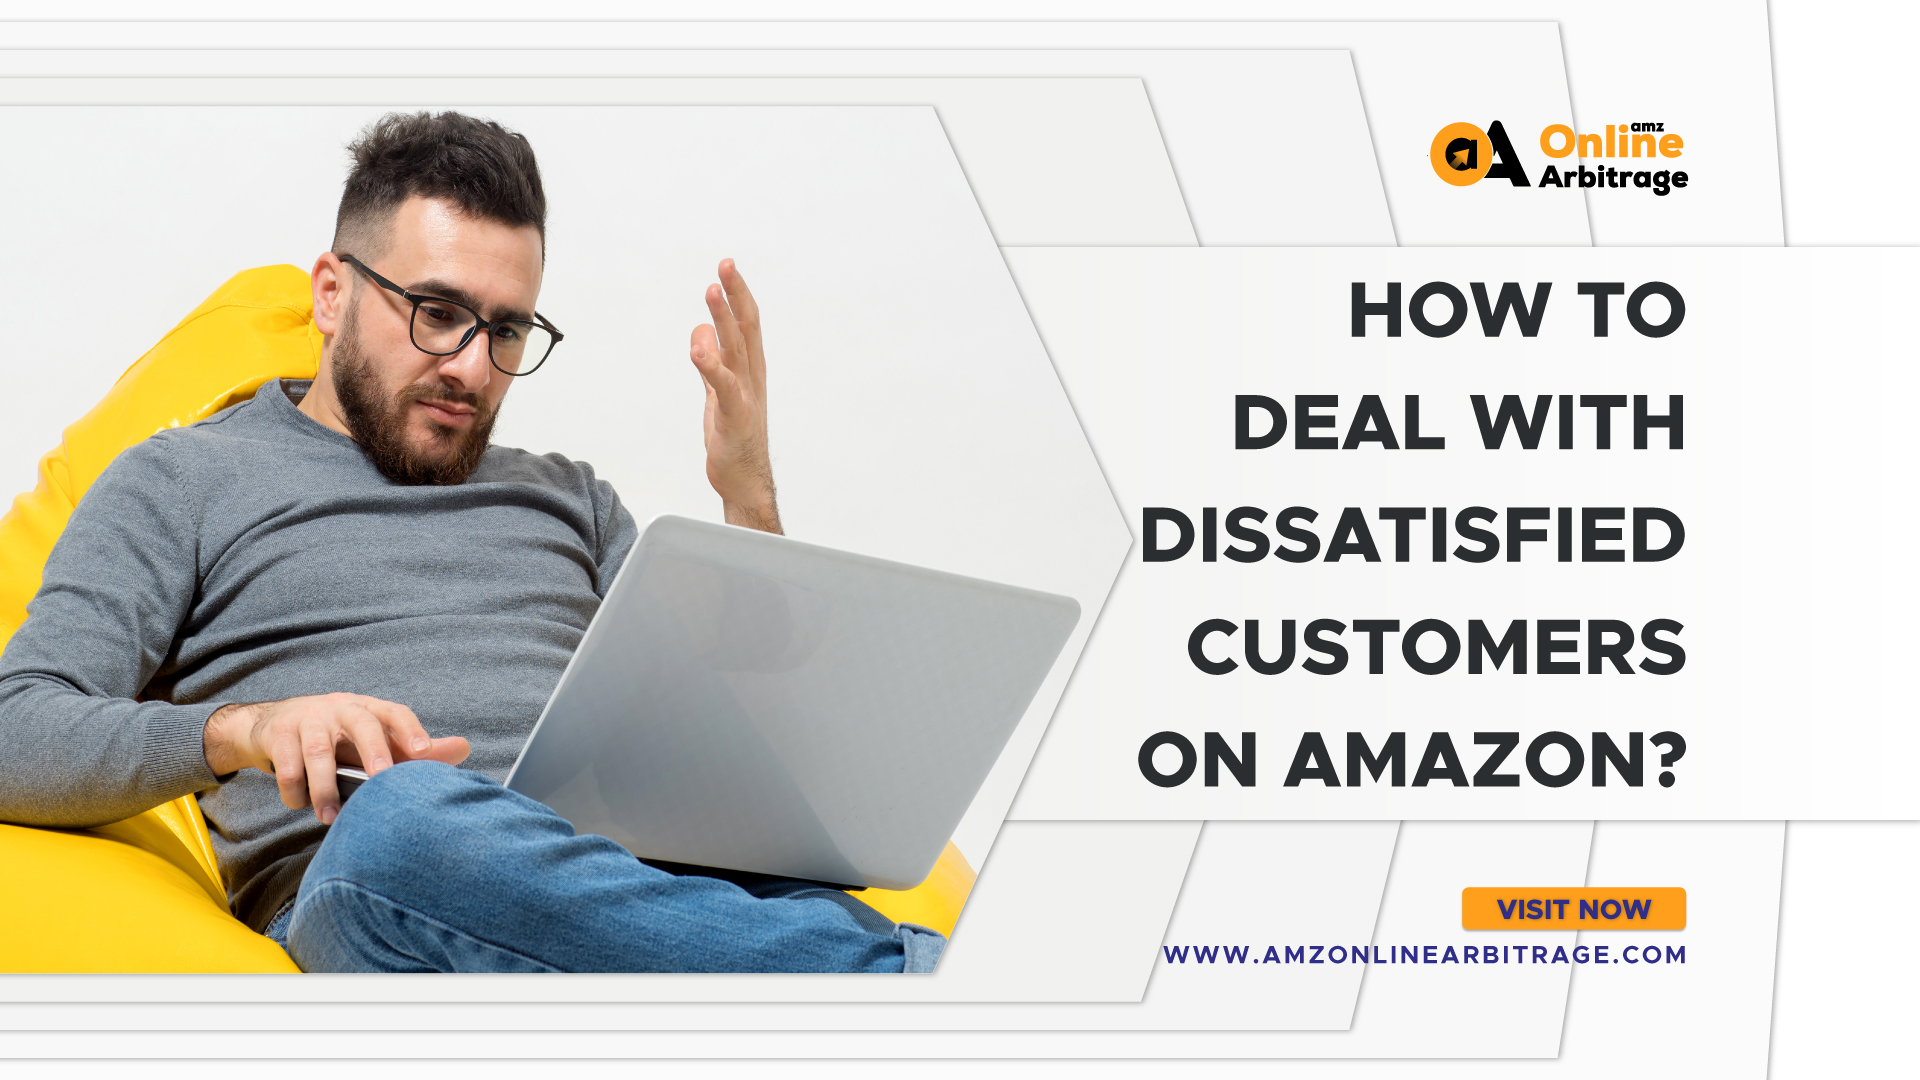 HOW TO DEAL WITH DISSATISFIED CUSTOMERS ON AMAZON?